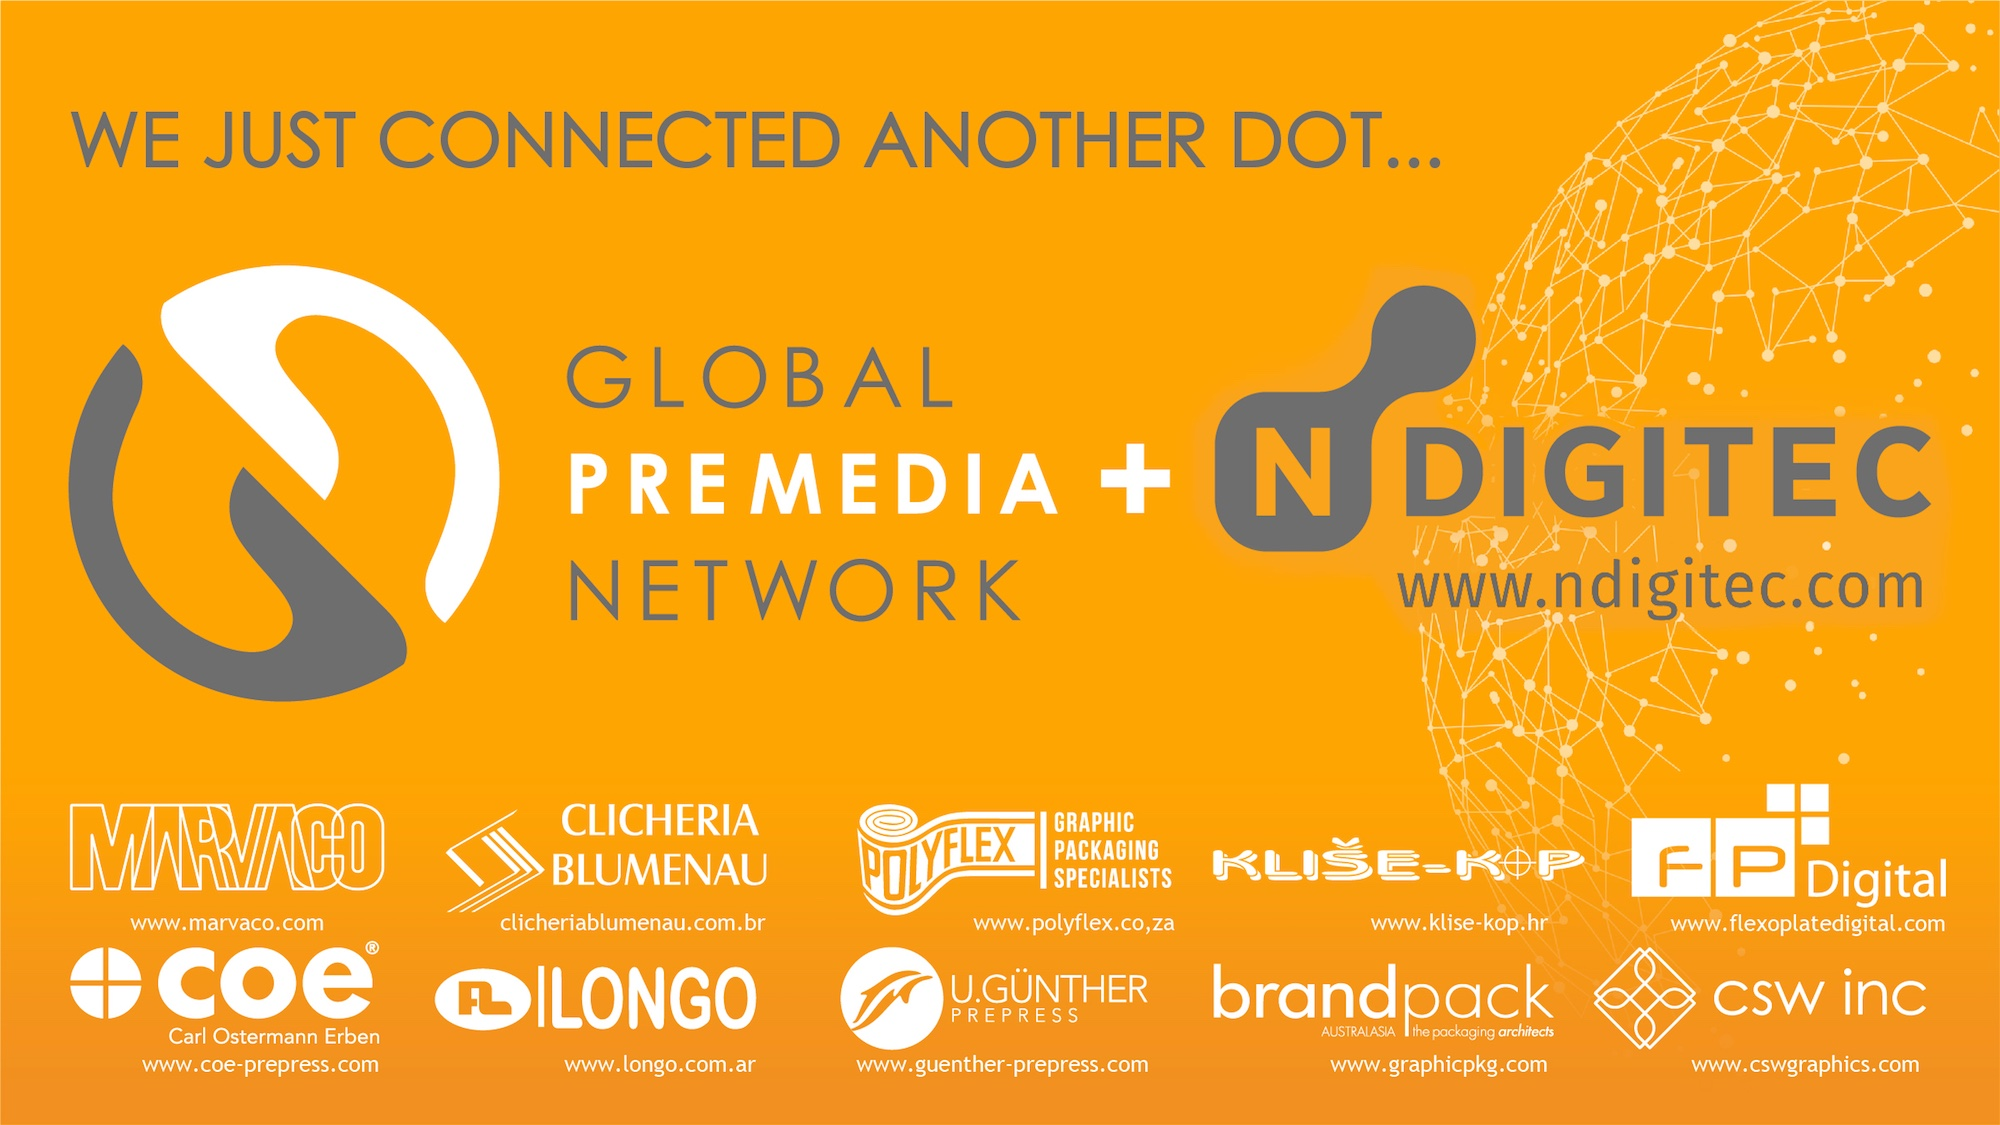 NDigitec joins the GPN